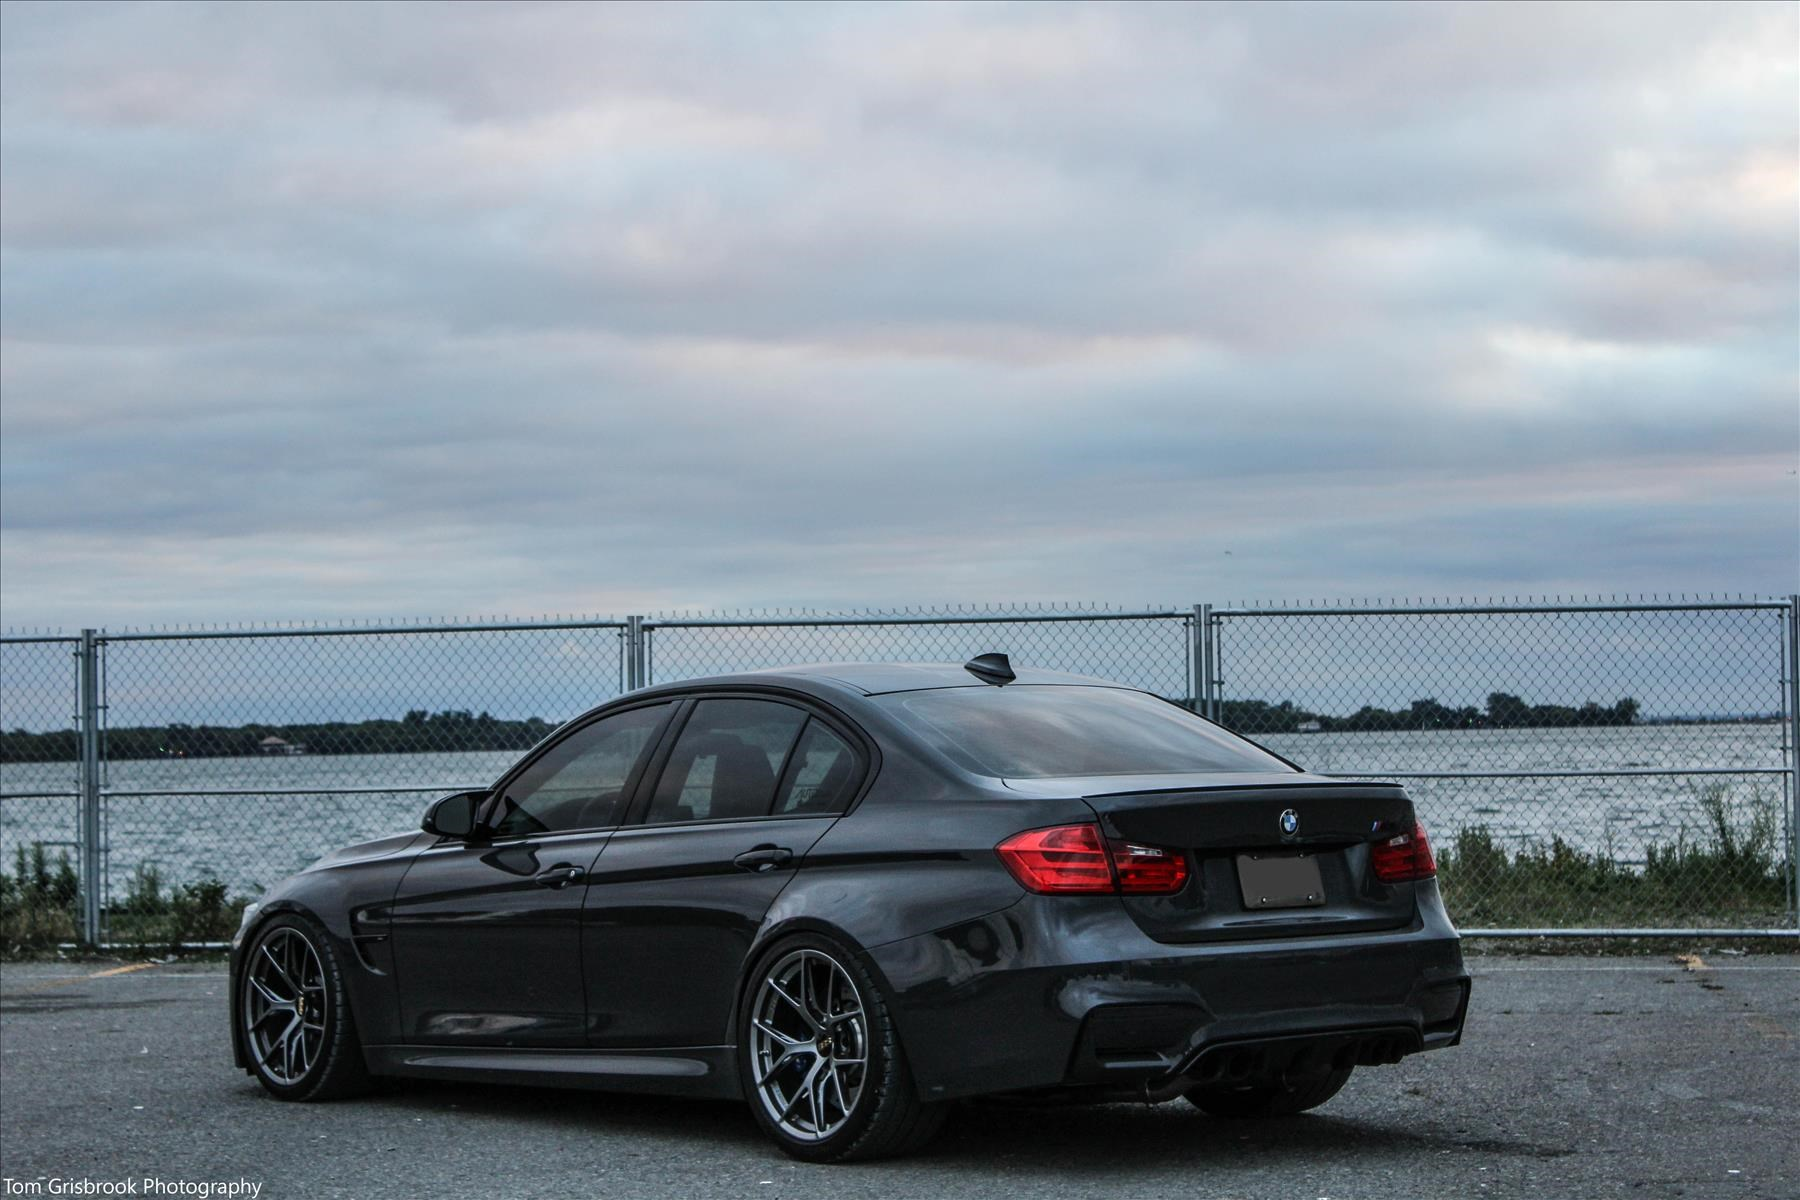 BMW M3 on a clean set of BBS wheels